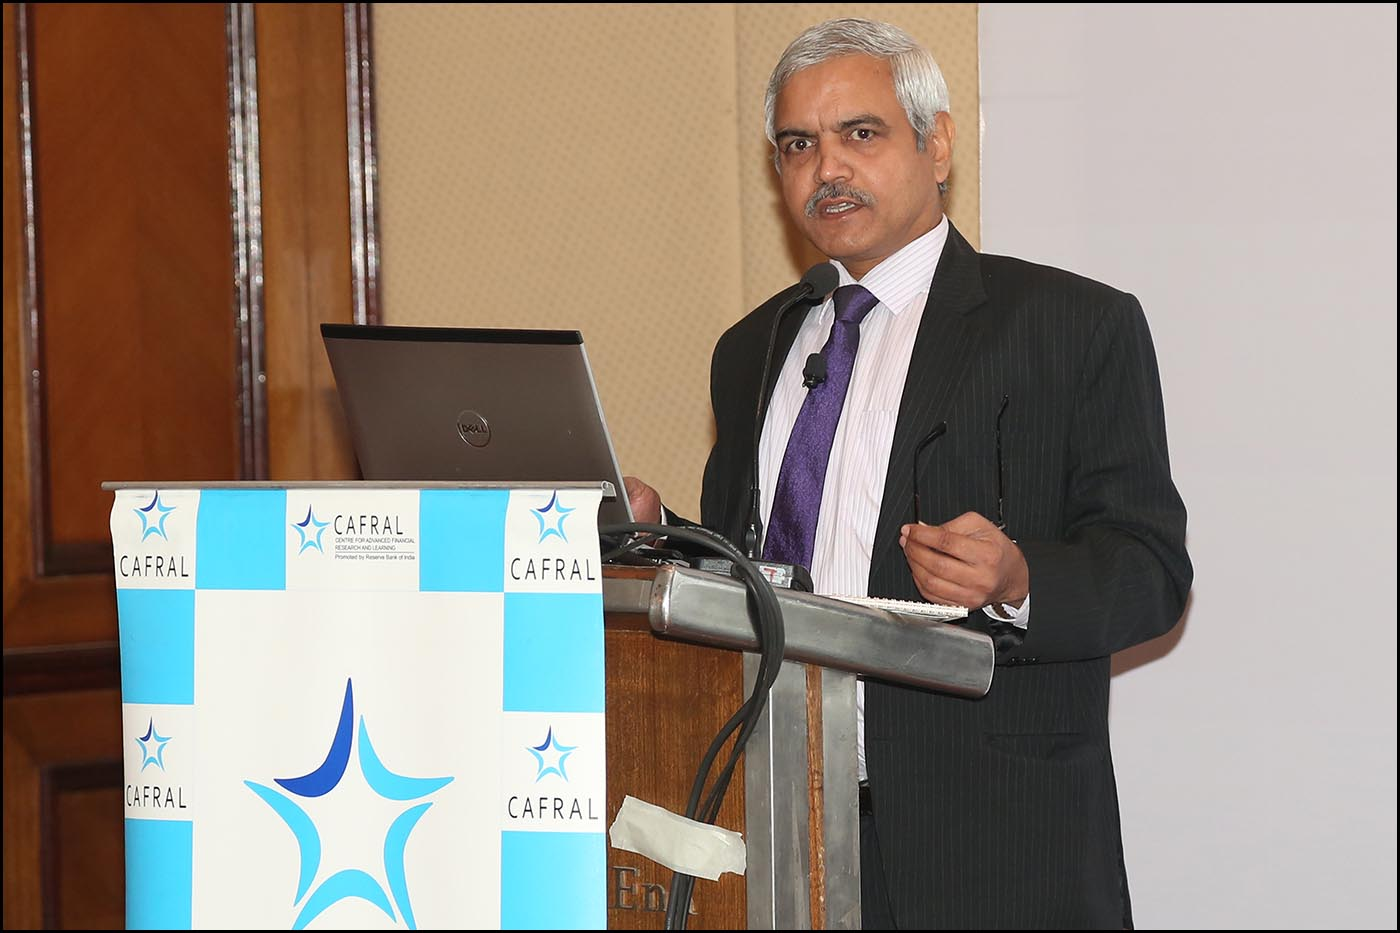 Rakesh Mishra, Principal Commissioner of Income Tax, Government of India, Mumbai